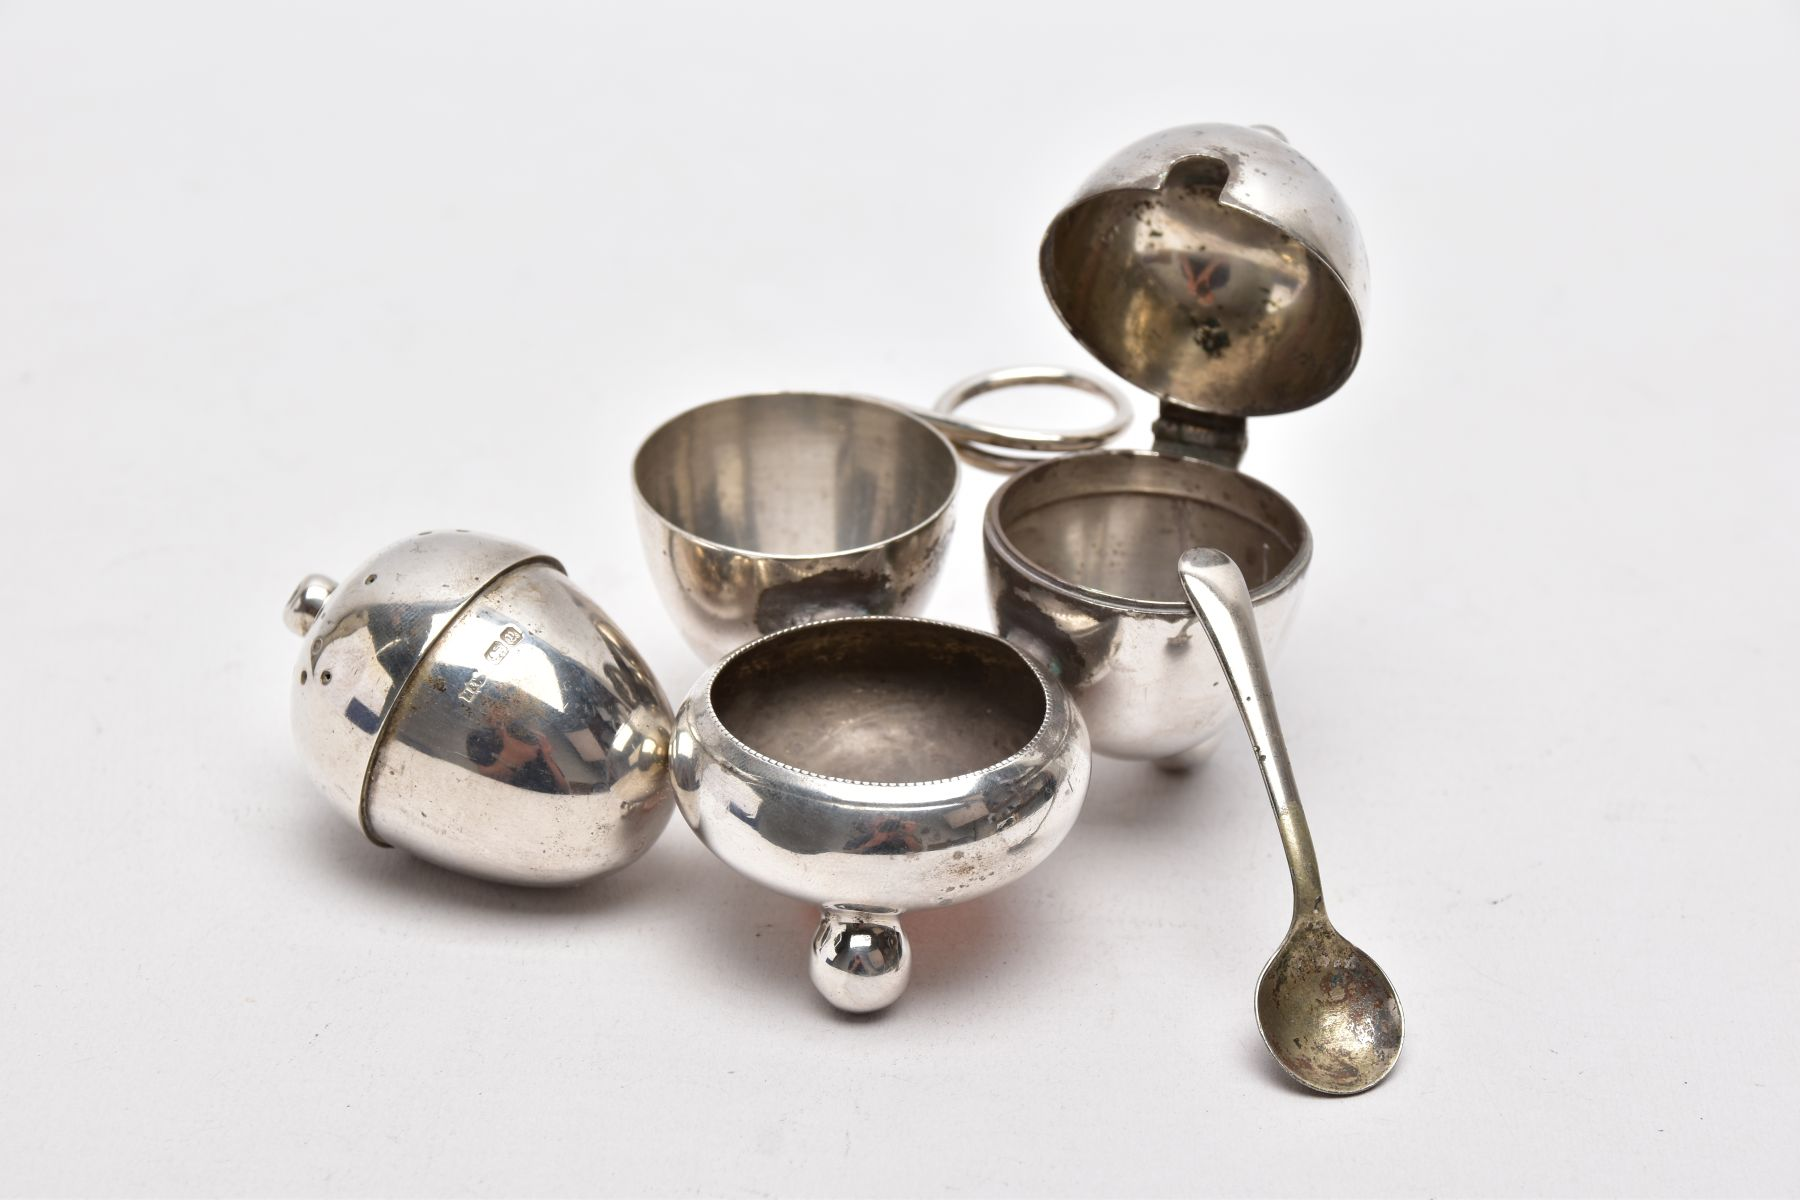 AN EARLY 20TH CENTURY 'MAPPIN & WEBB' CRUET SET, a three piece set with integral strand, - Image 3 of 5